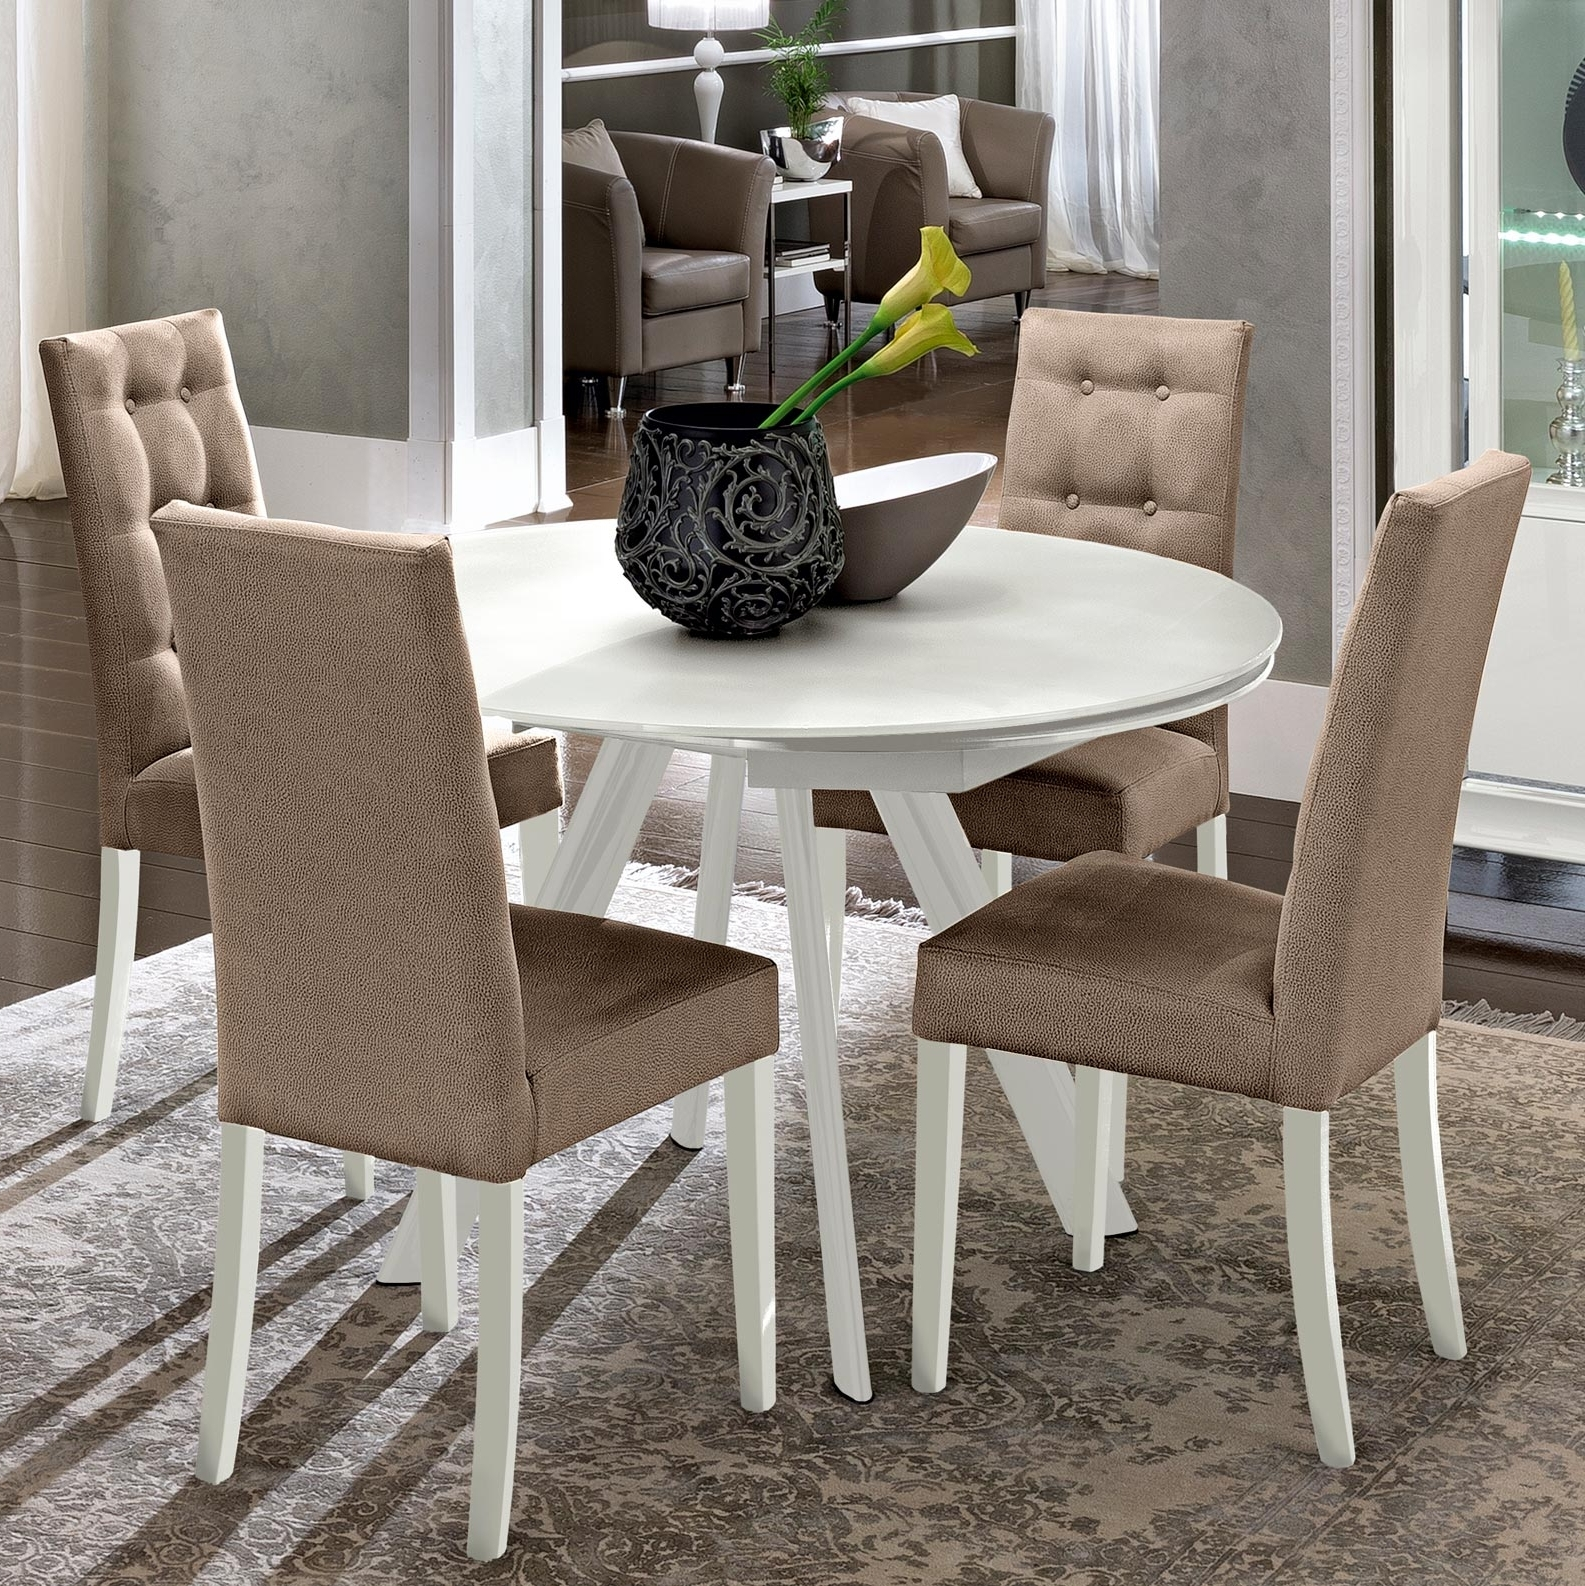 Caligula White High Gloss & Glass Round Extending Dining Table  (View 4 of 25)